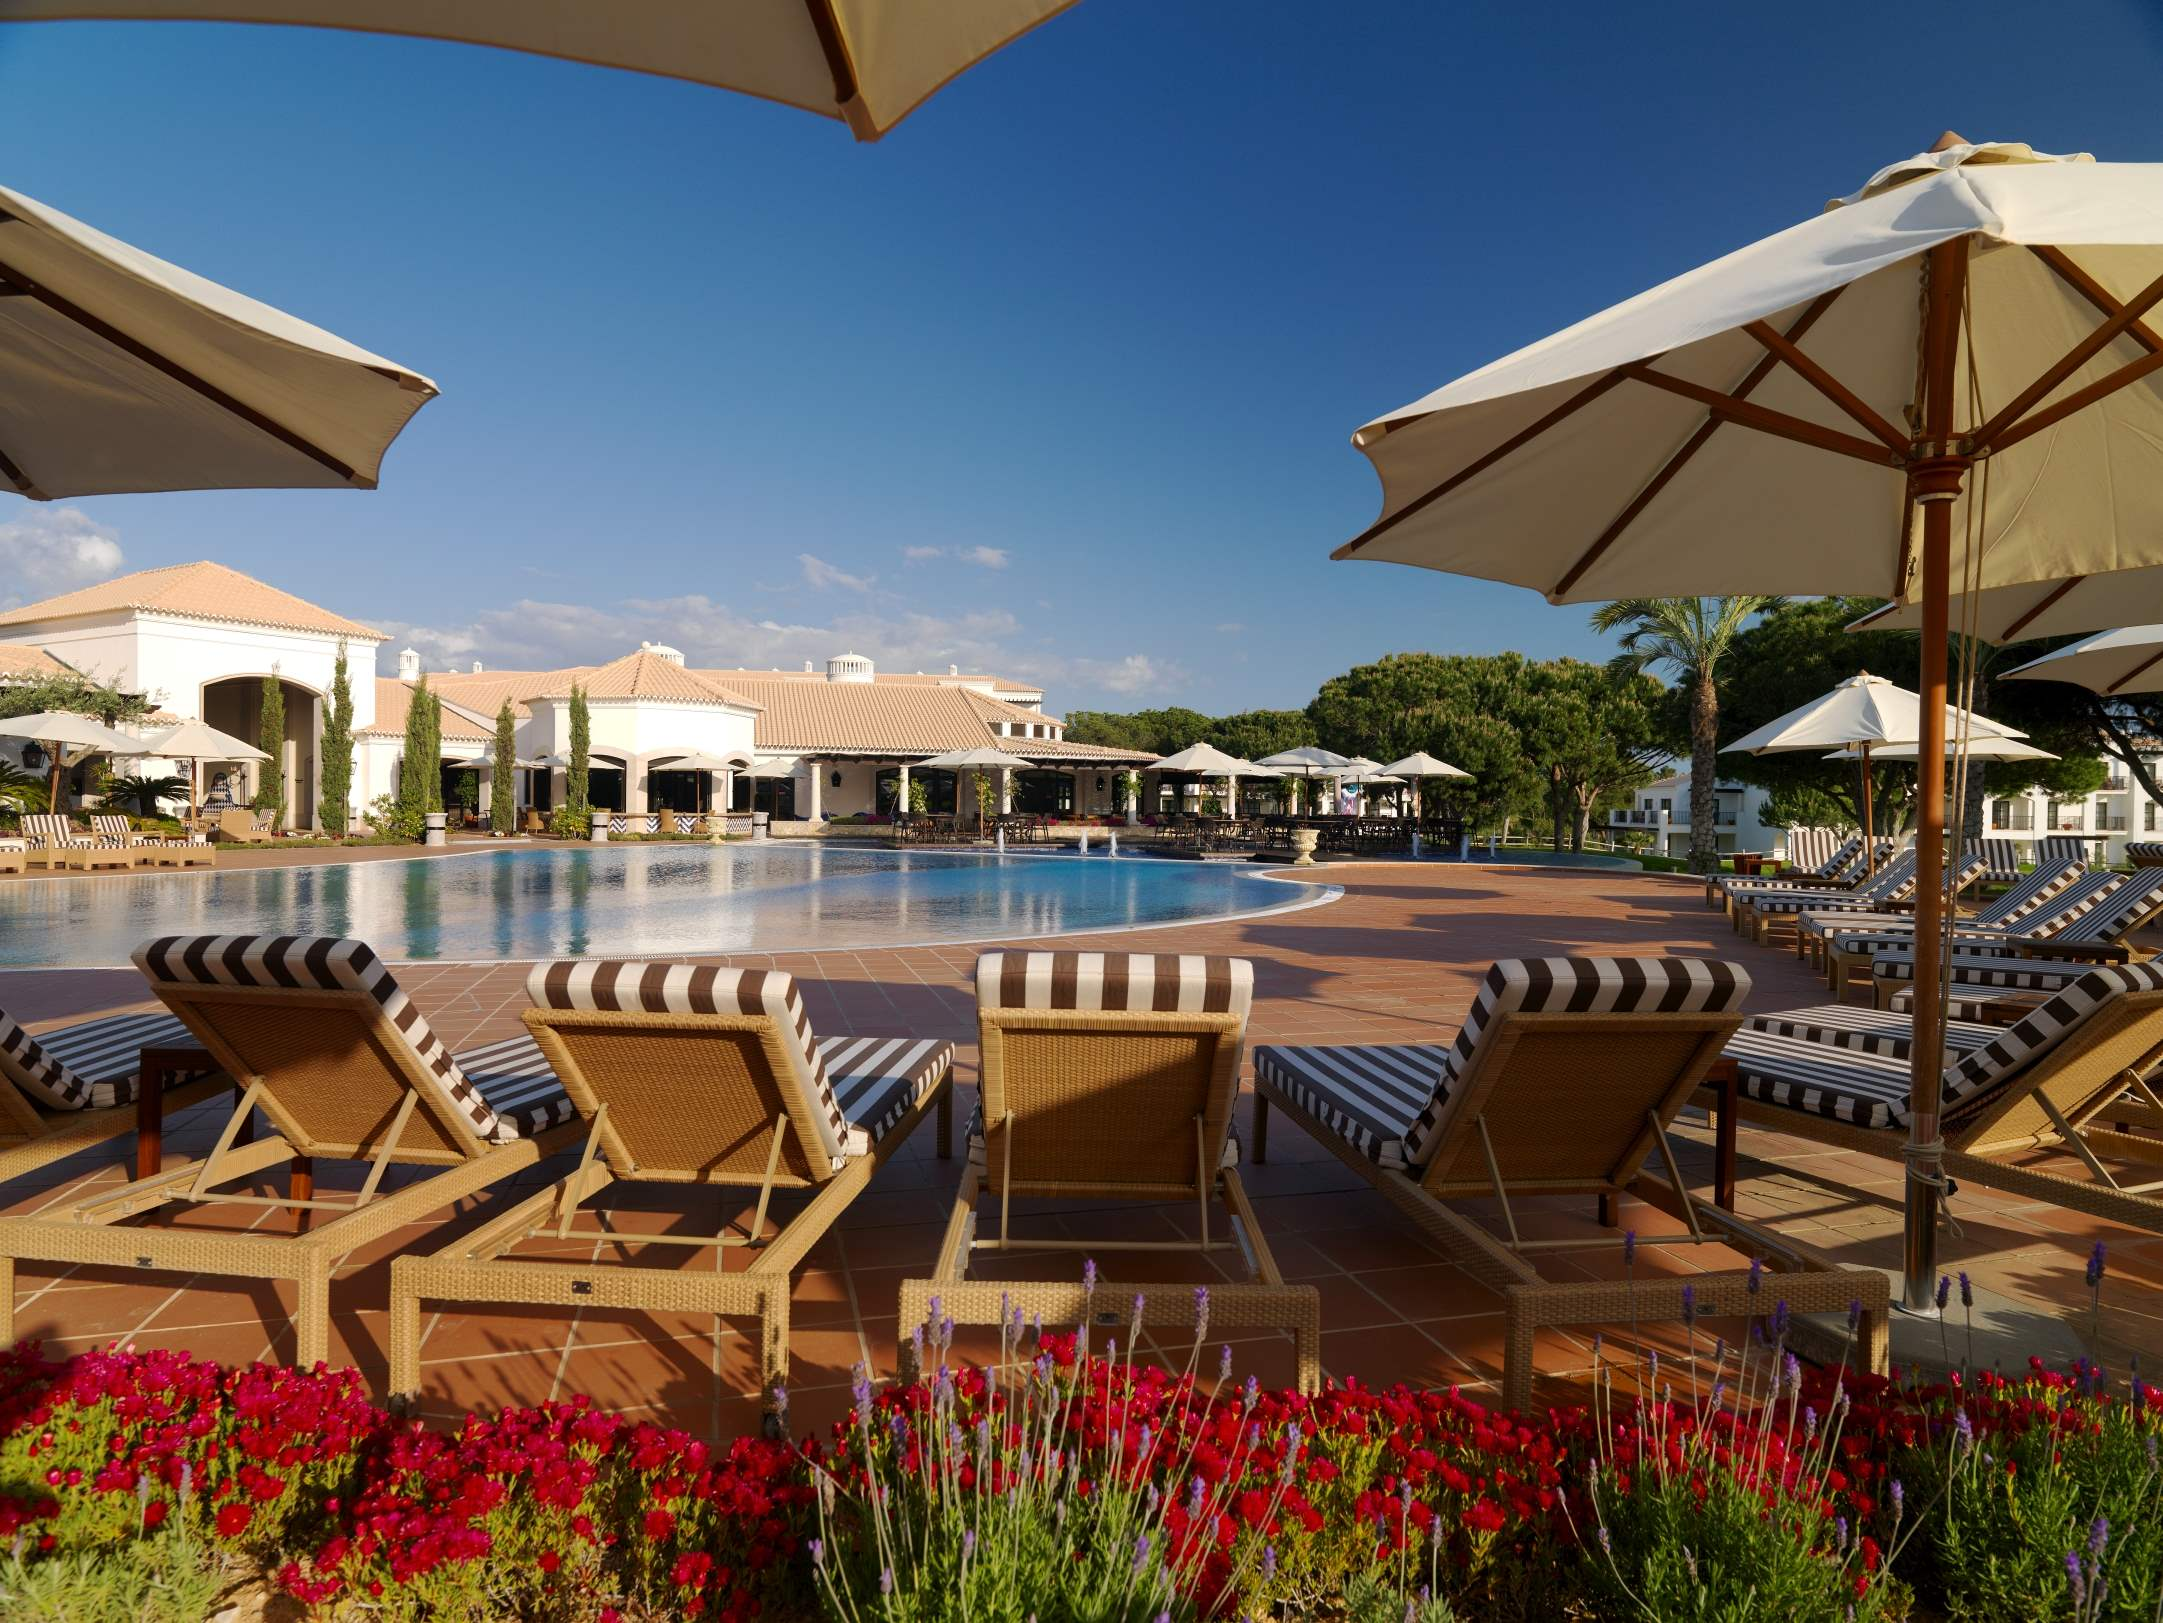 Pine Cliffs Gardens, Two Bedroom Suite, S/C Basis, 2 bedroom apartment in Pine Cliffs Resort, Algarve Photo #35